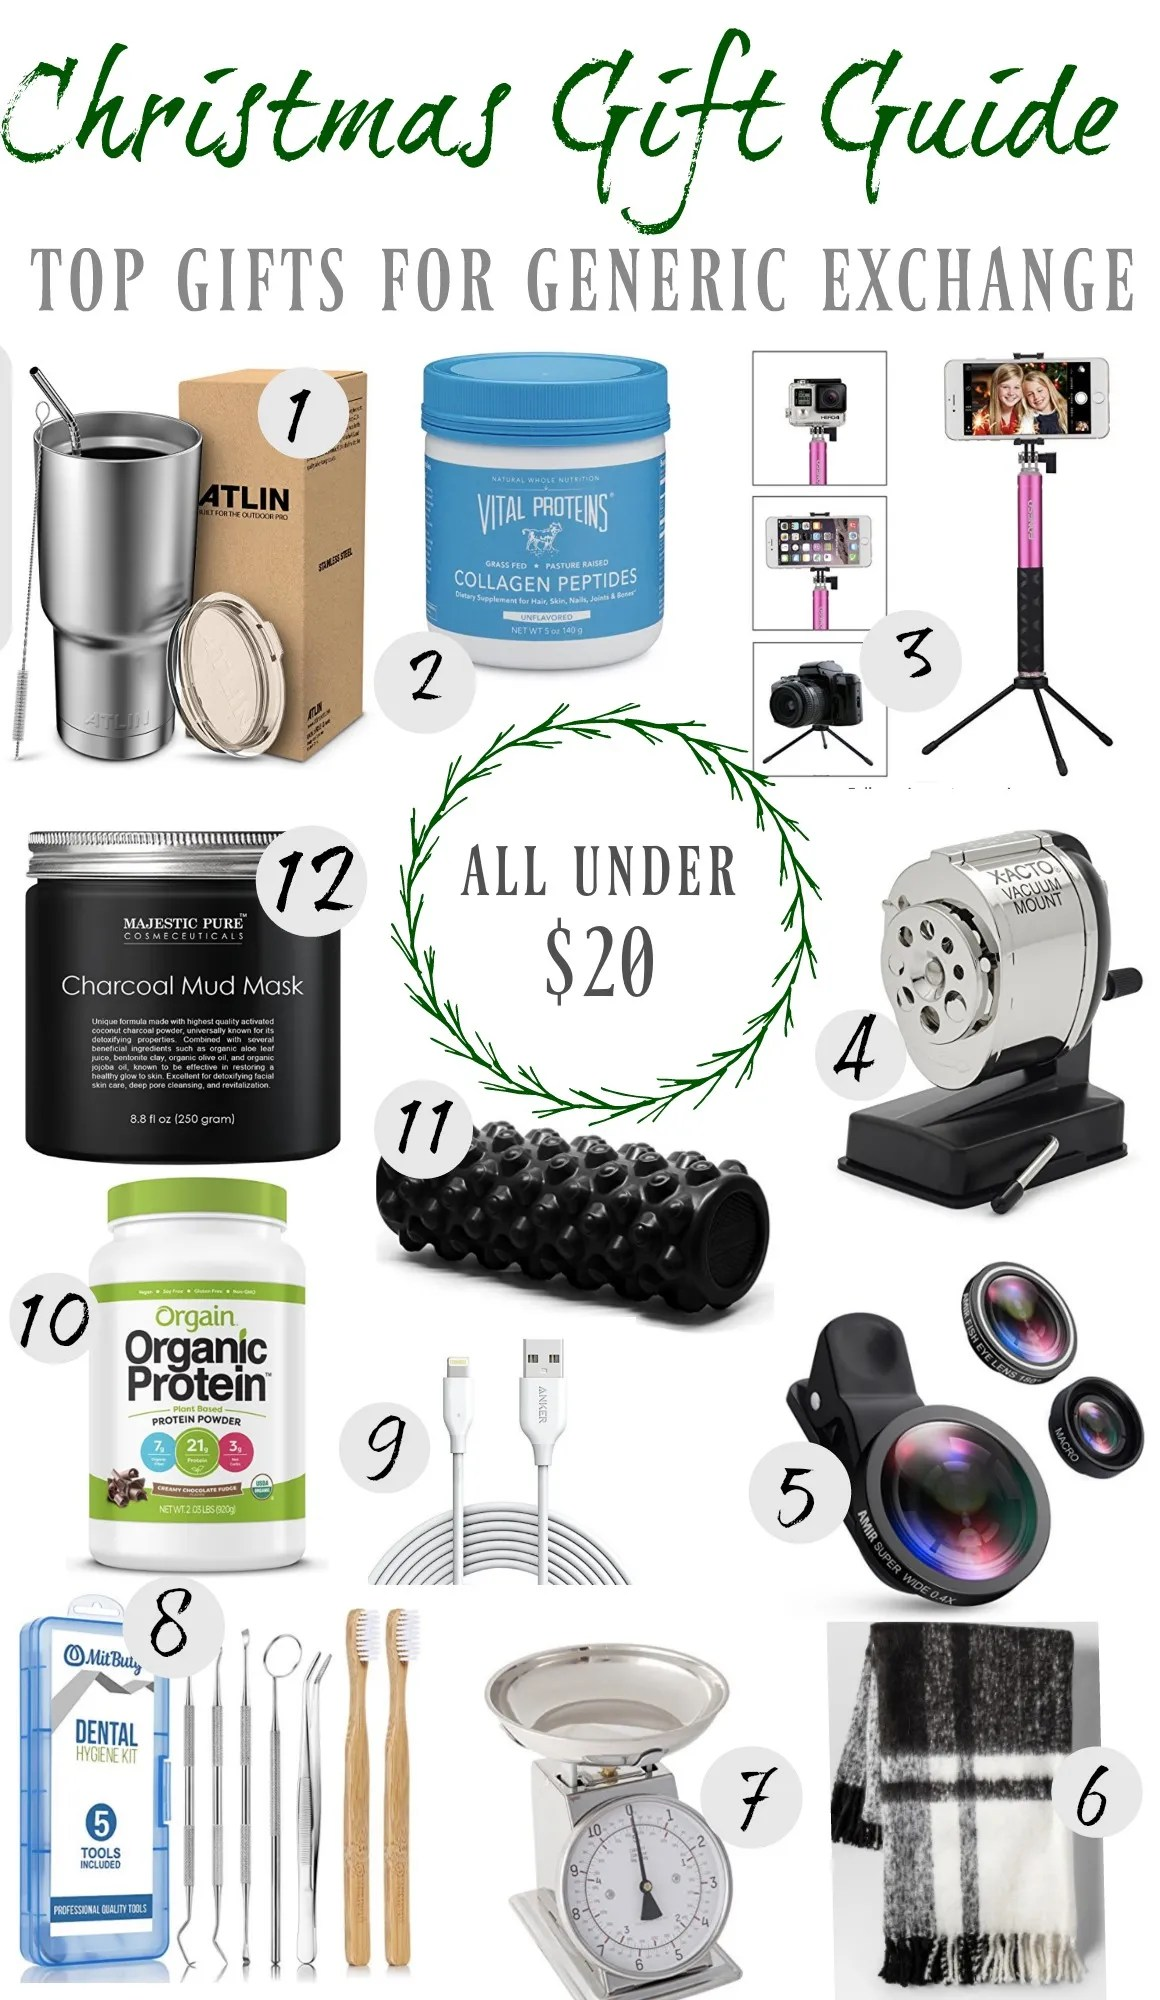 Gift Guide for White Elephant Game (not gag gifts) and Cyber Monday ...